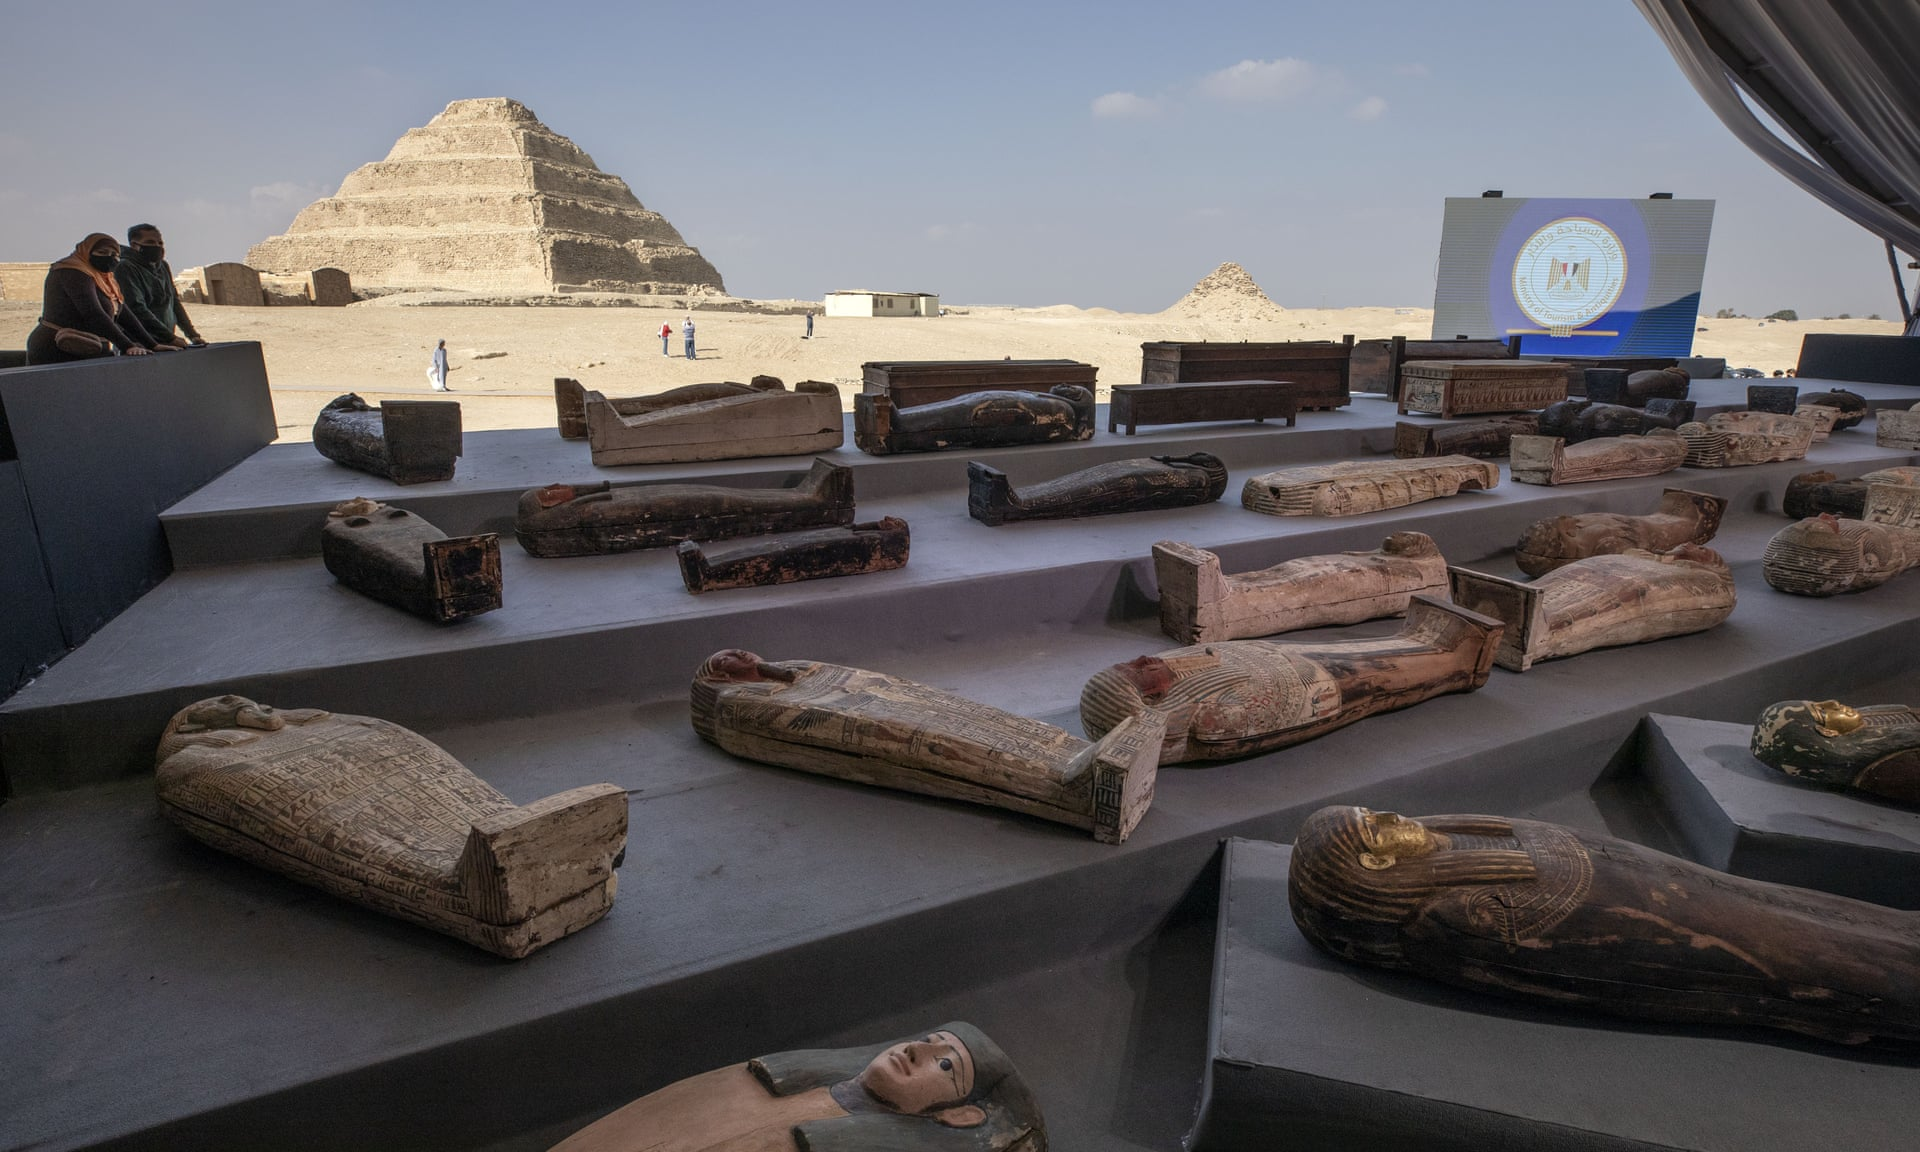 Egypt Discovers Nearly 100 Sealed Coffins Buried Over 2,500 Years Ago